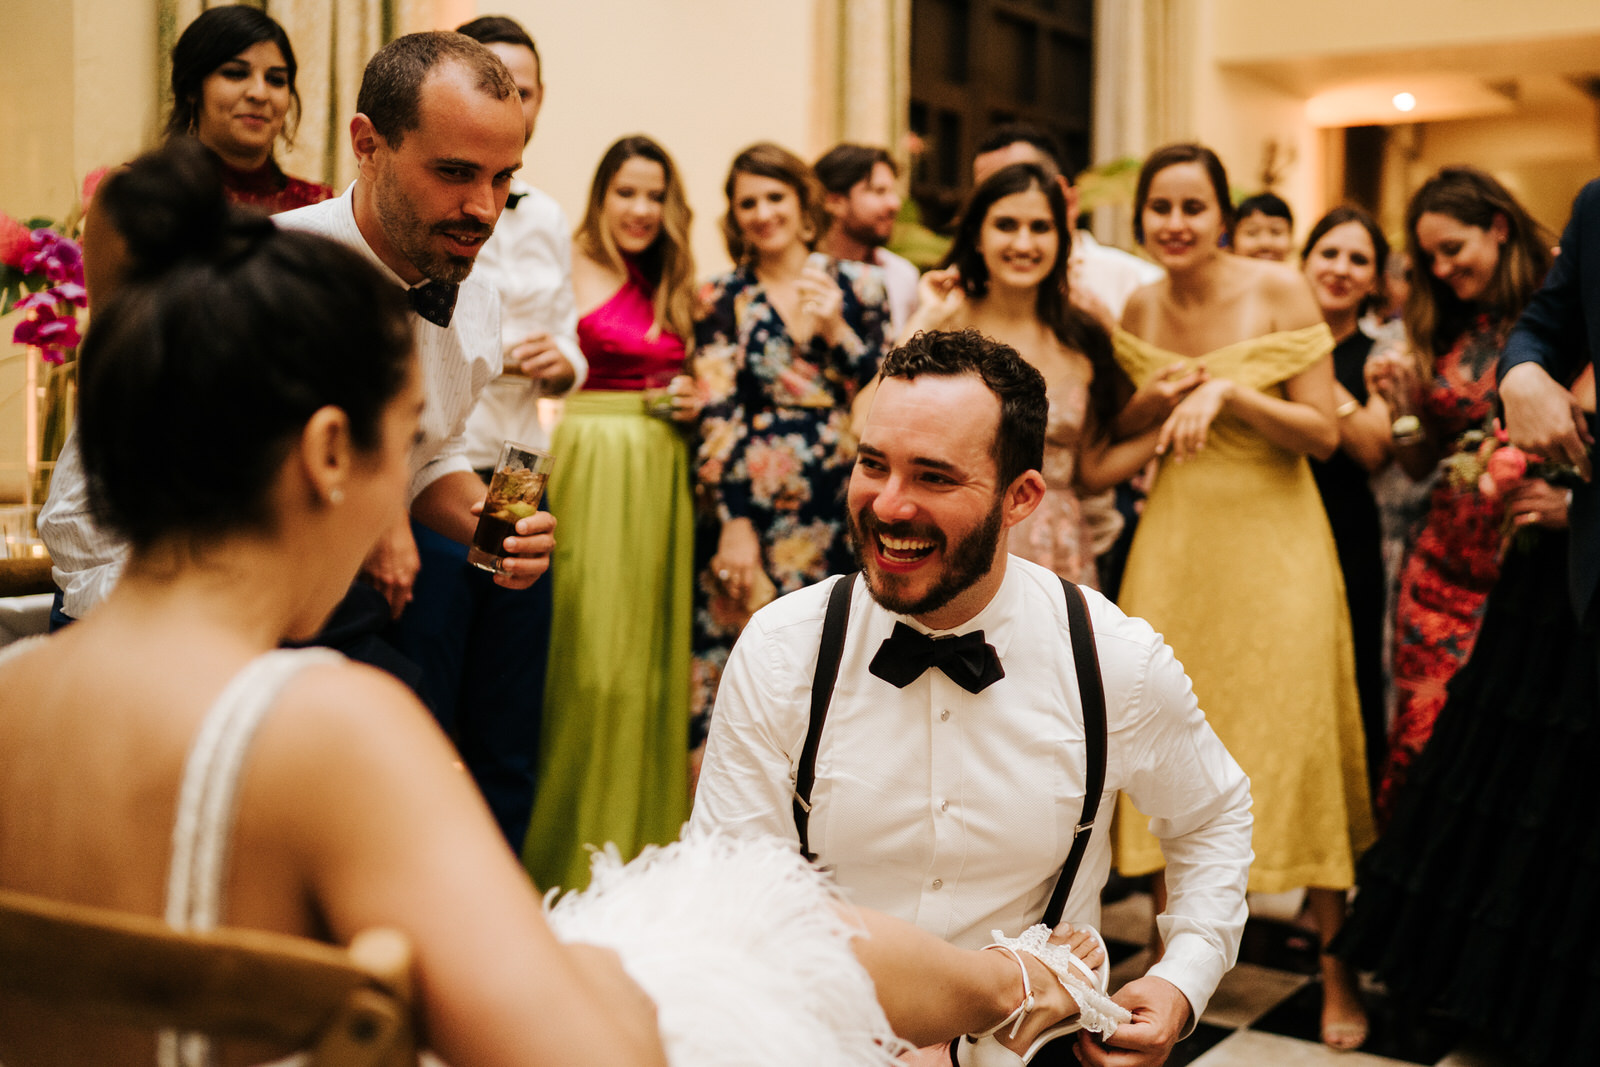 Groom smiles as he takes off the bride's garter as she sits on a chair